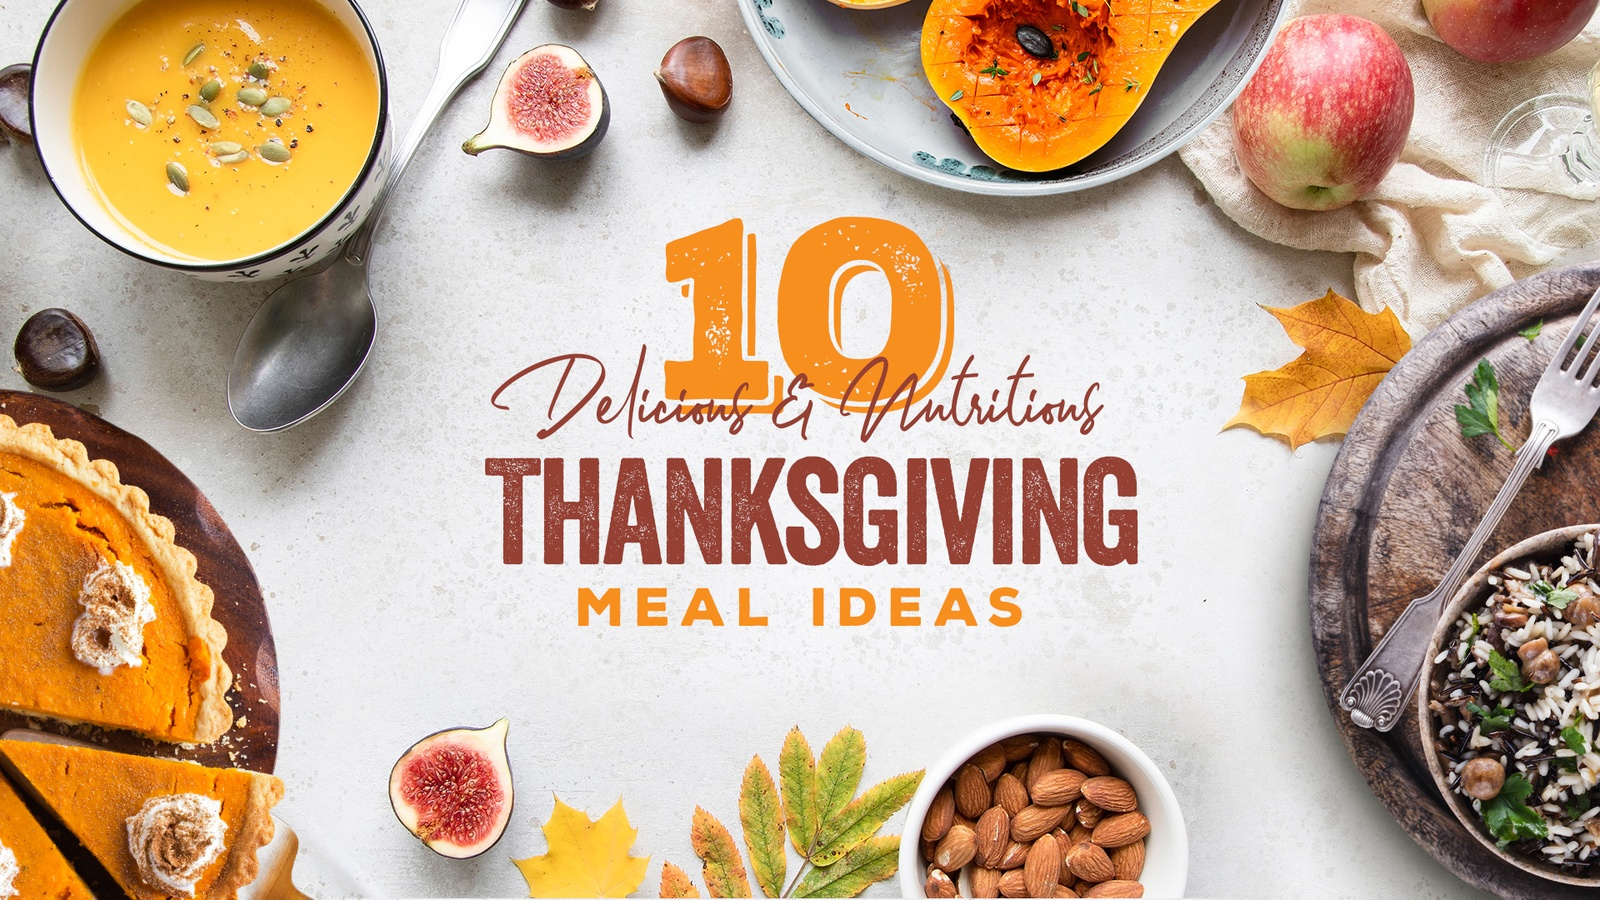 10 Delicious & Nutritious Thanksgiving Meal Ideas